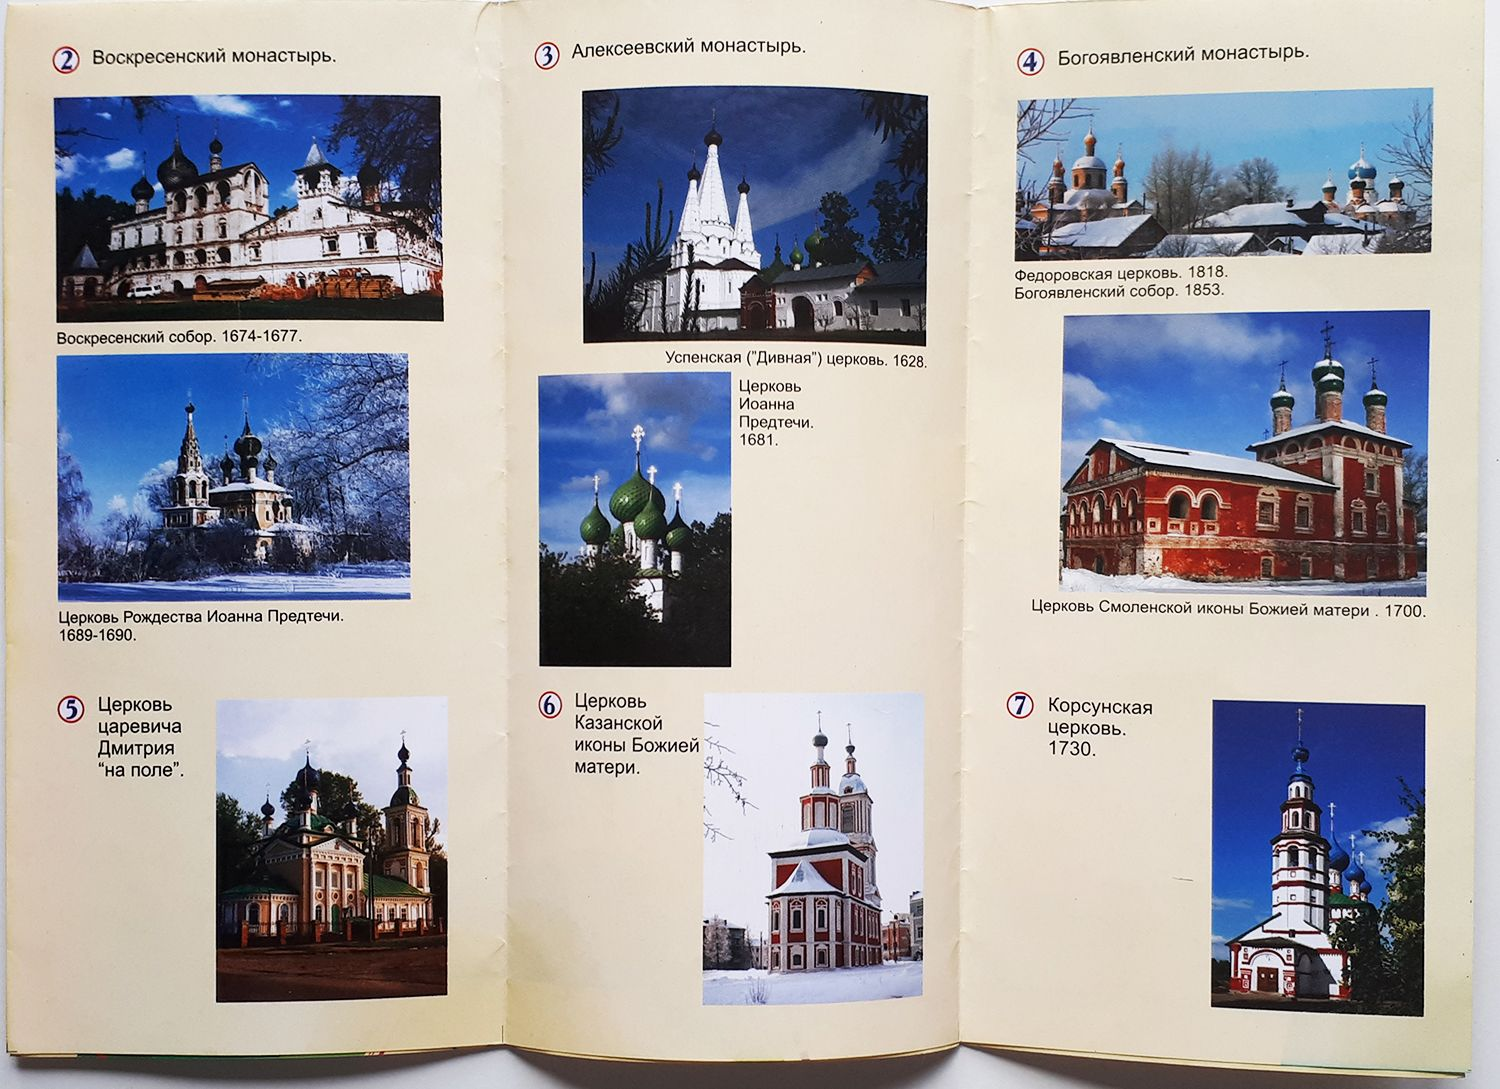 Details About Booklet Map Scheme Of The Ancient City Of Russia Uglich Yaroslavl Region